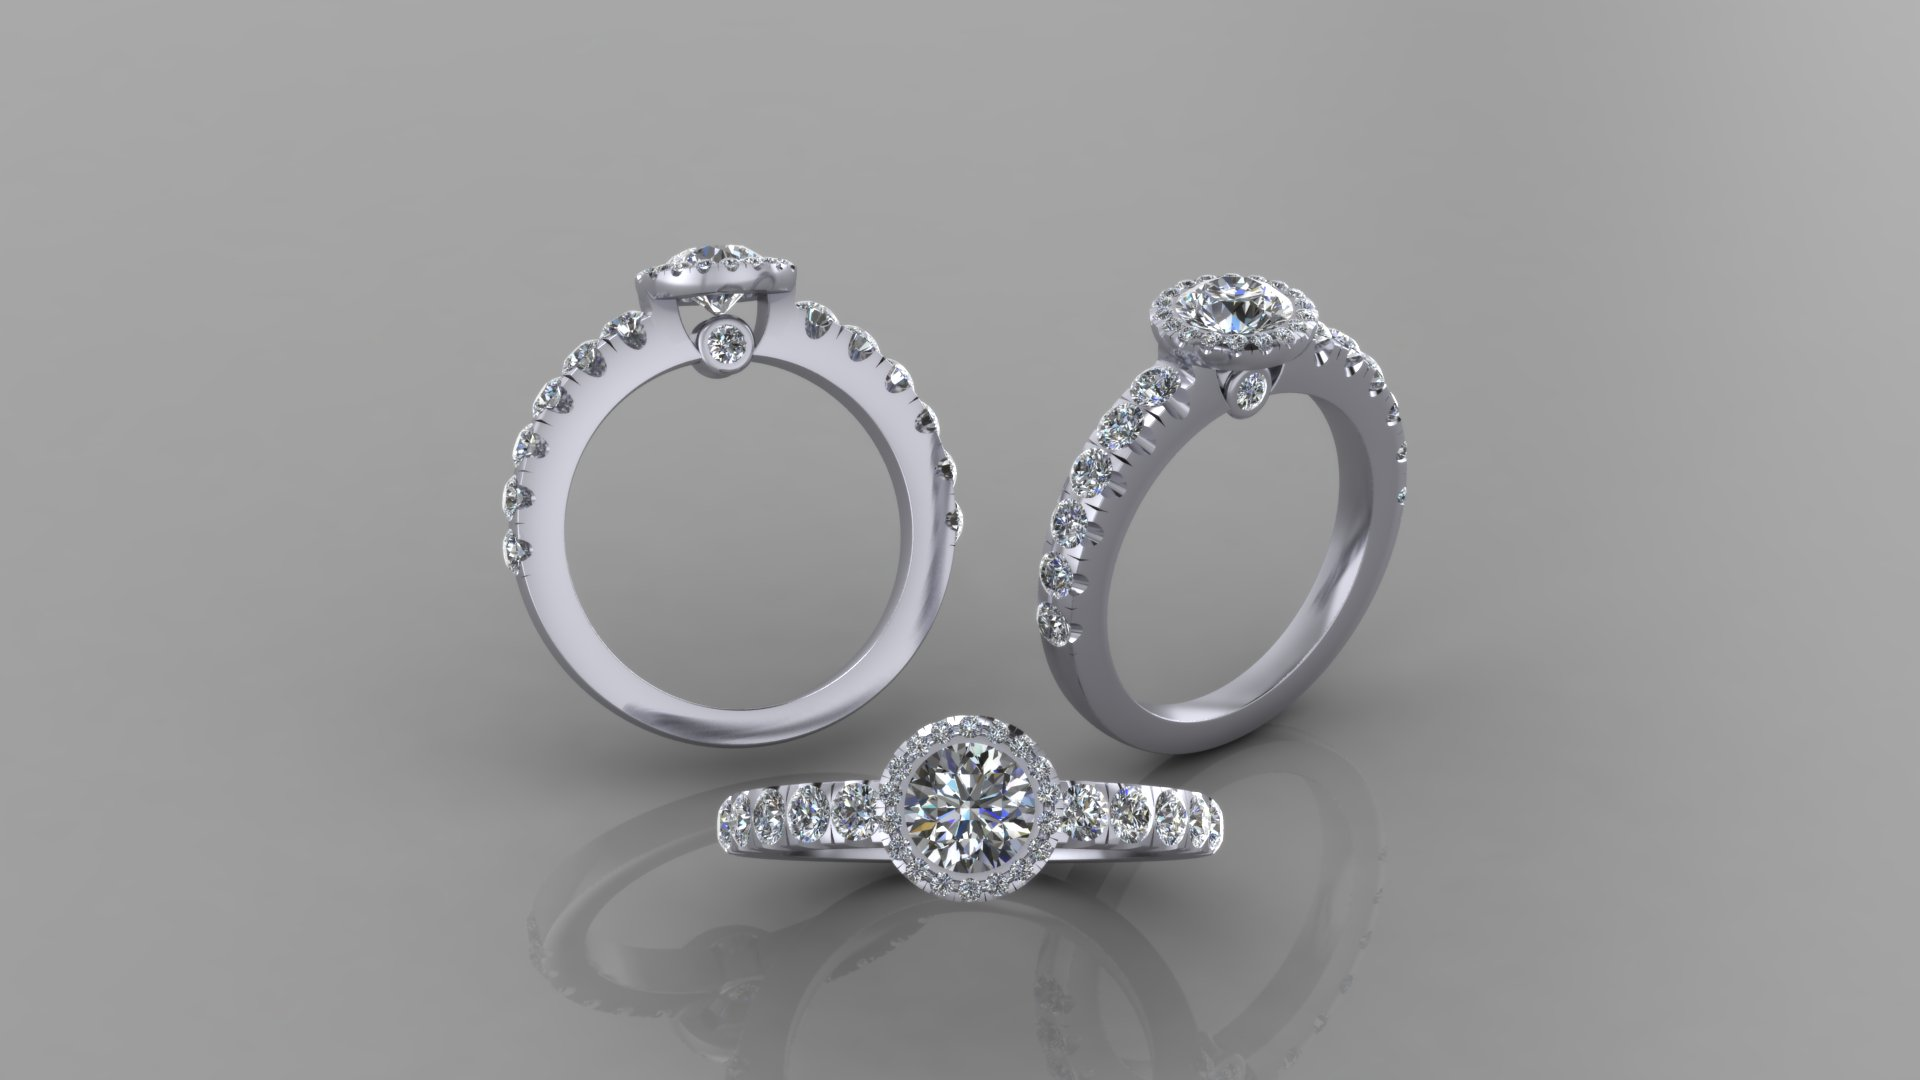 CAD render of three views of the platinum and diamond engagement ring